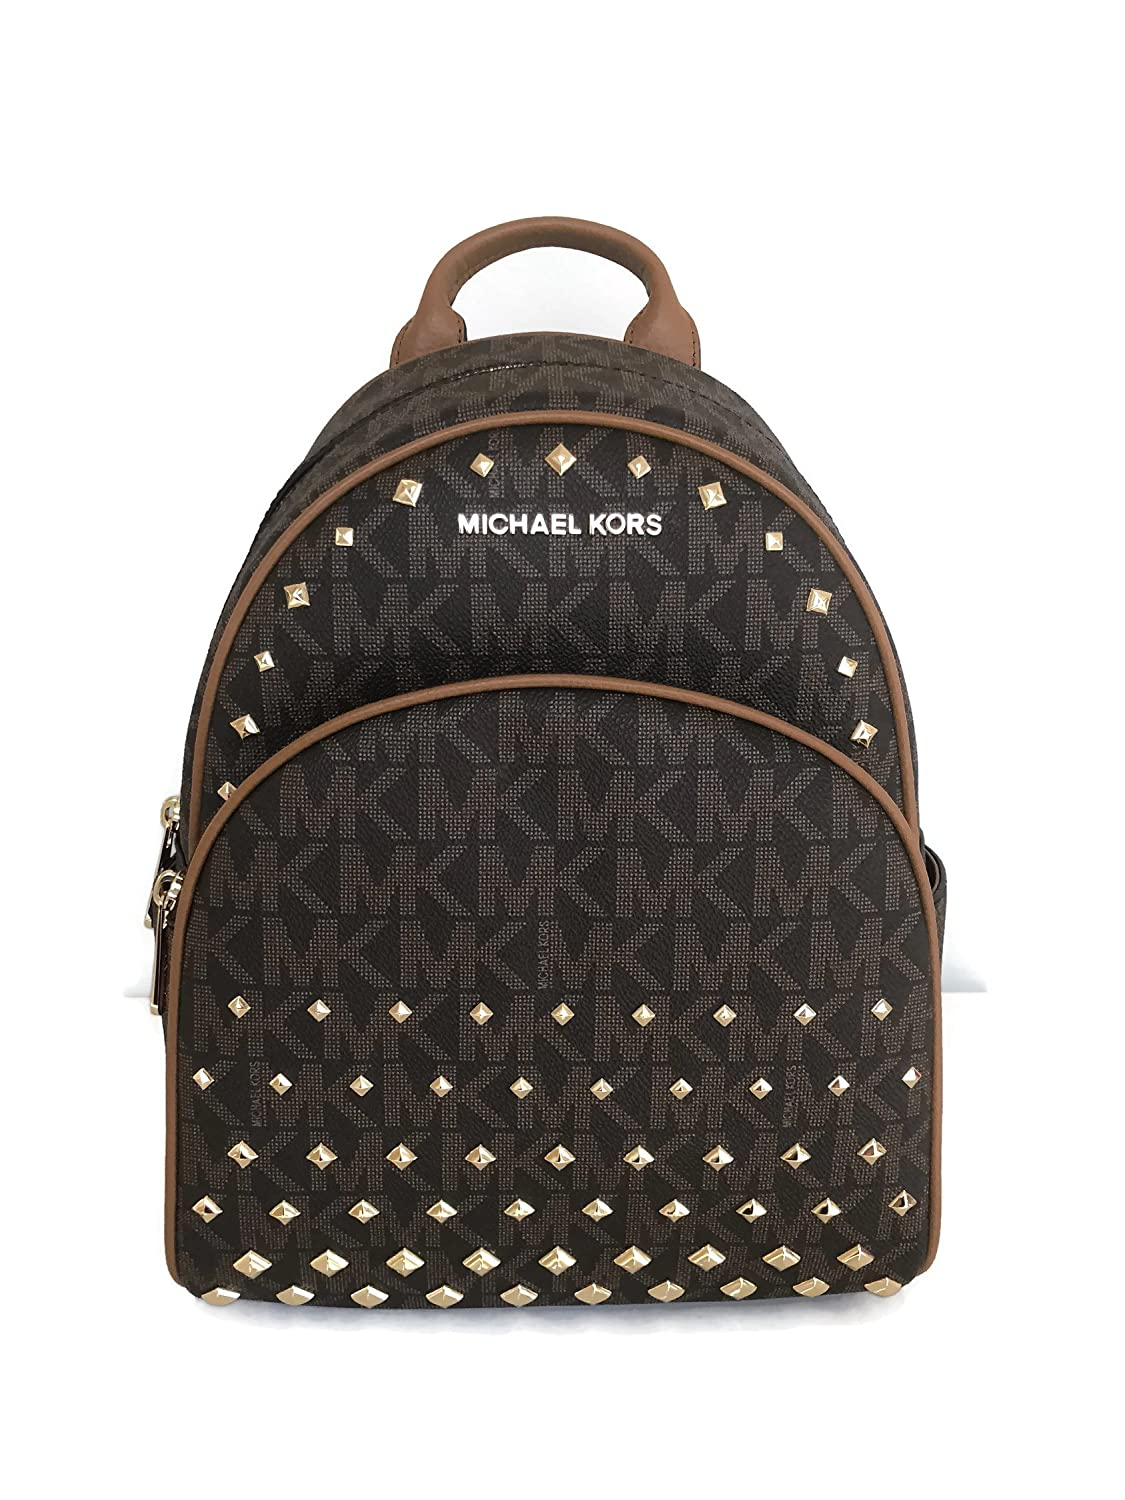 8e0d879c59b8 Amazon.com: Michael Kors Abbey Medium brown Studded Backpack MK Signature  Stud School Bag: Shoes